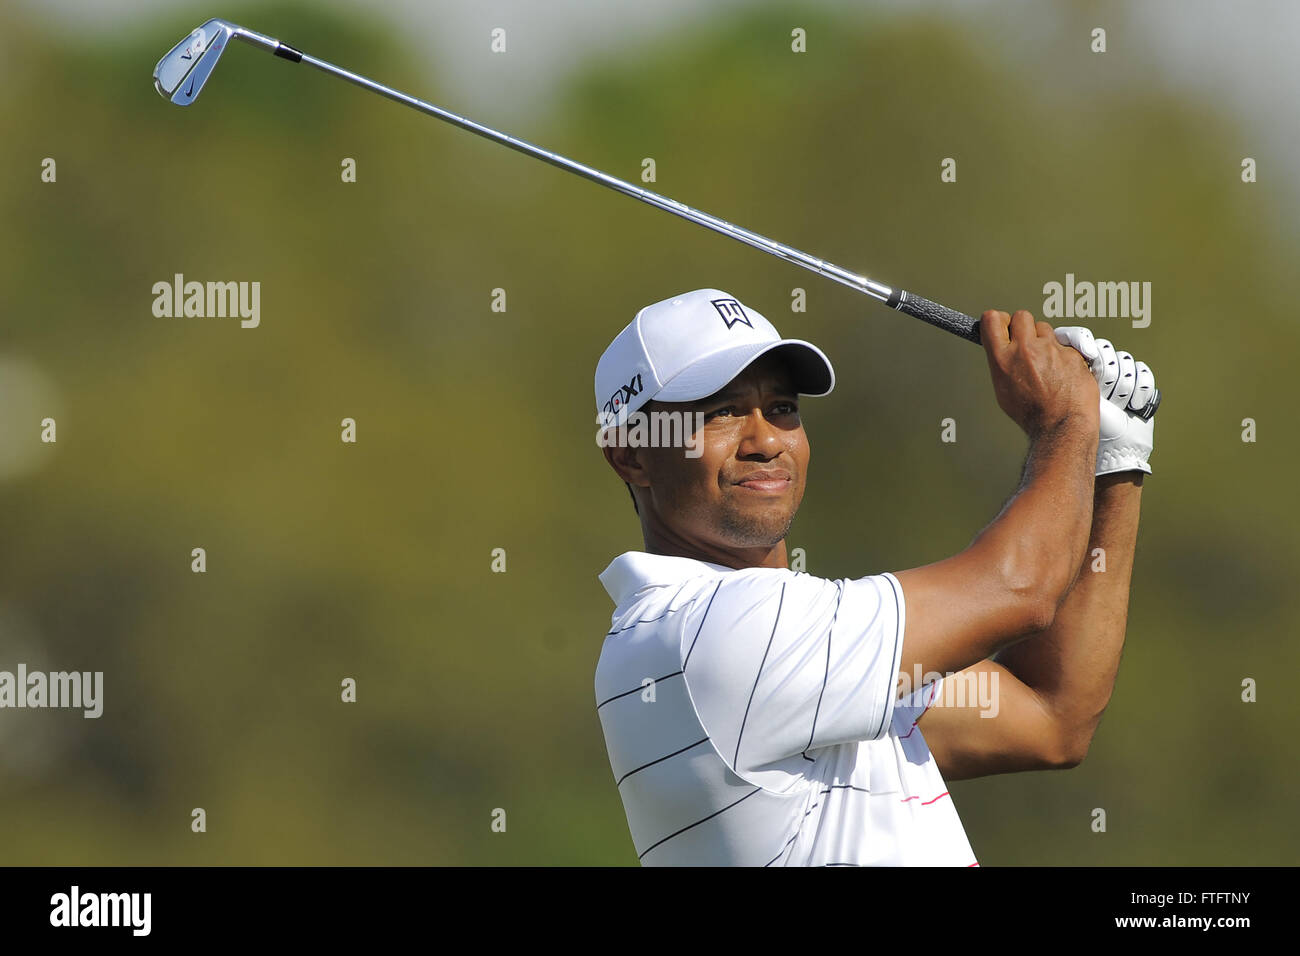 March 23, 2012 - Orlando, Fla, USA - Tiger Woods during the second round of the Arnold Palmer Invitational at the Bay Hill Club and Lodge on March 23, ...